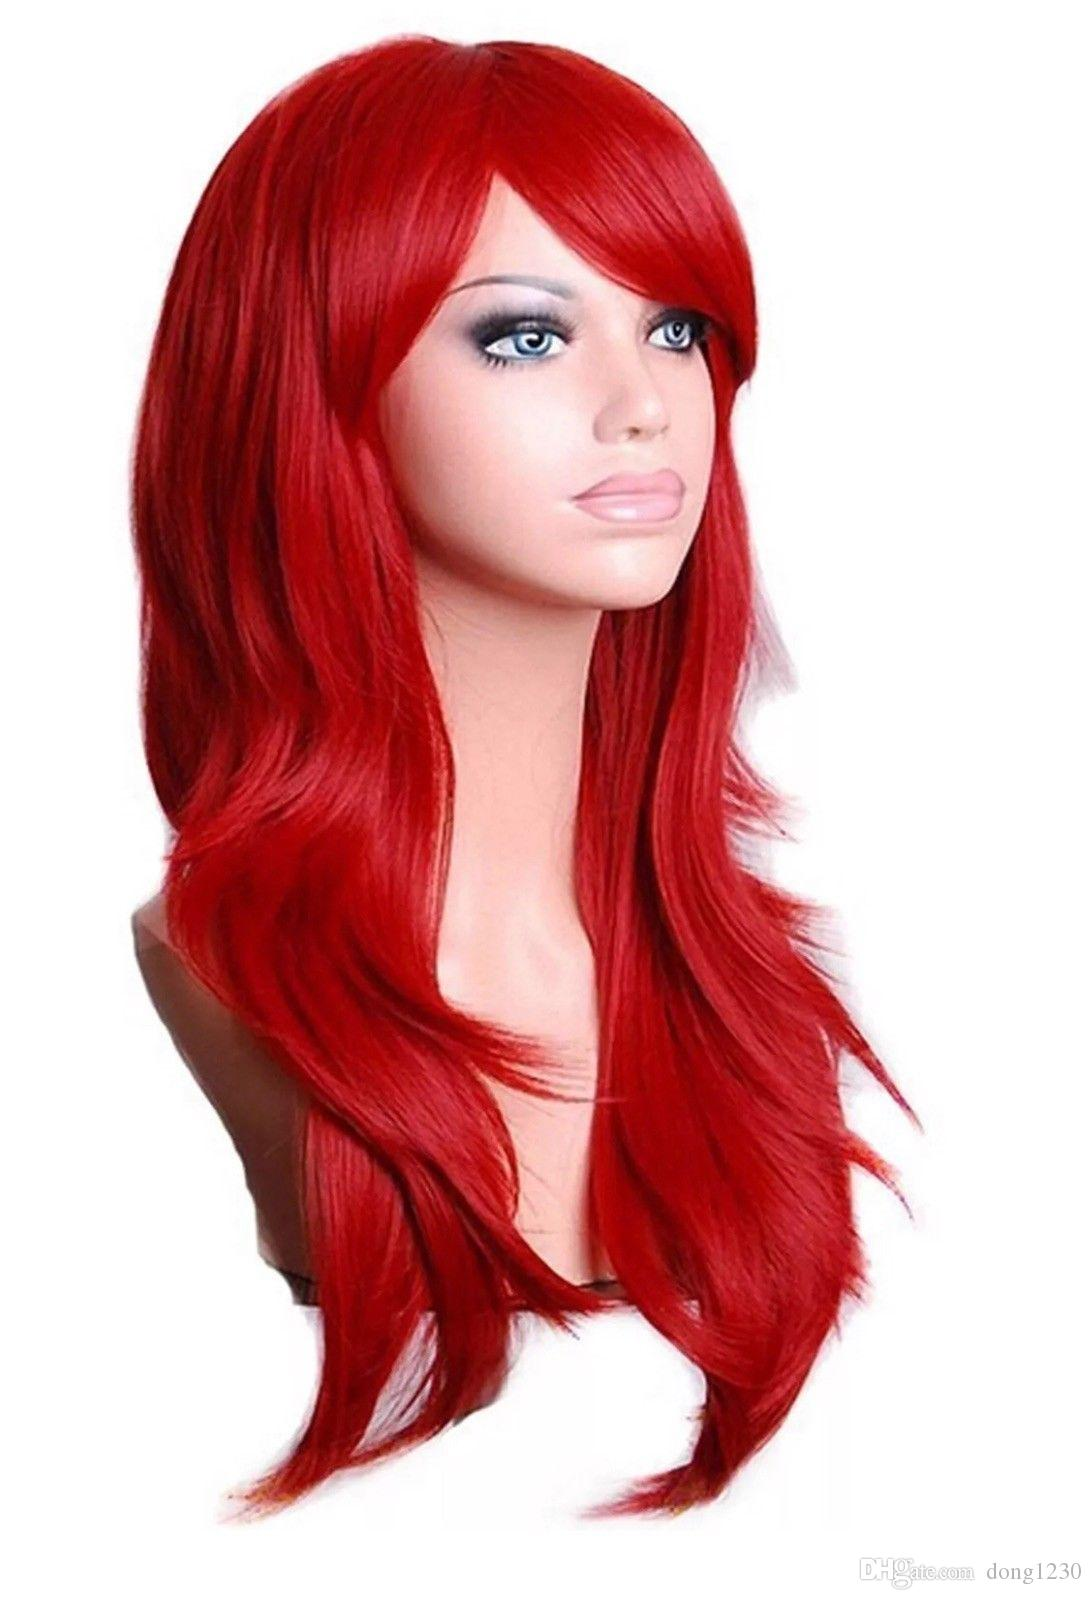 Acquista TopWigy Red Cosplay Parrucche Da Donna Lunghe Ondulate Sintetiche  Colorate Capelli Ariel Custome A  19.08 Dal Dong1230  b4b3ed6f1e1